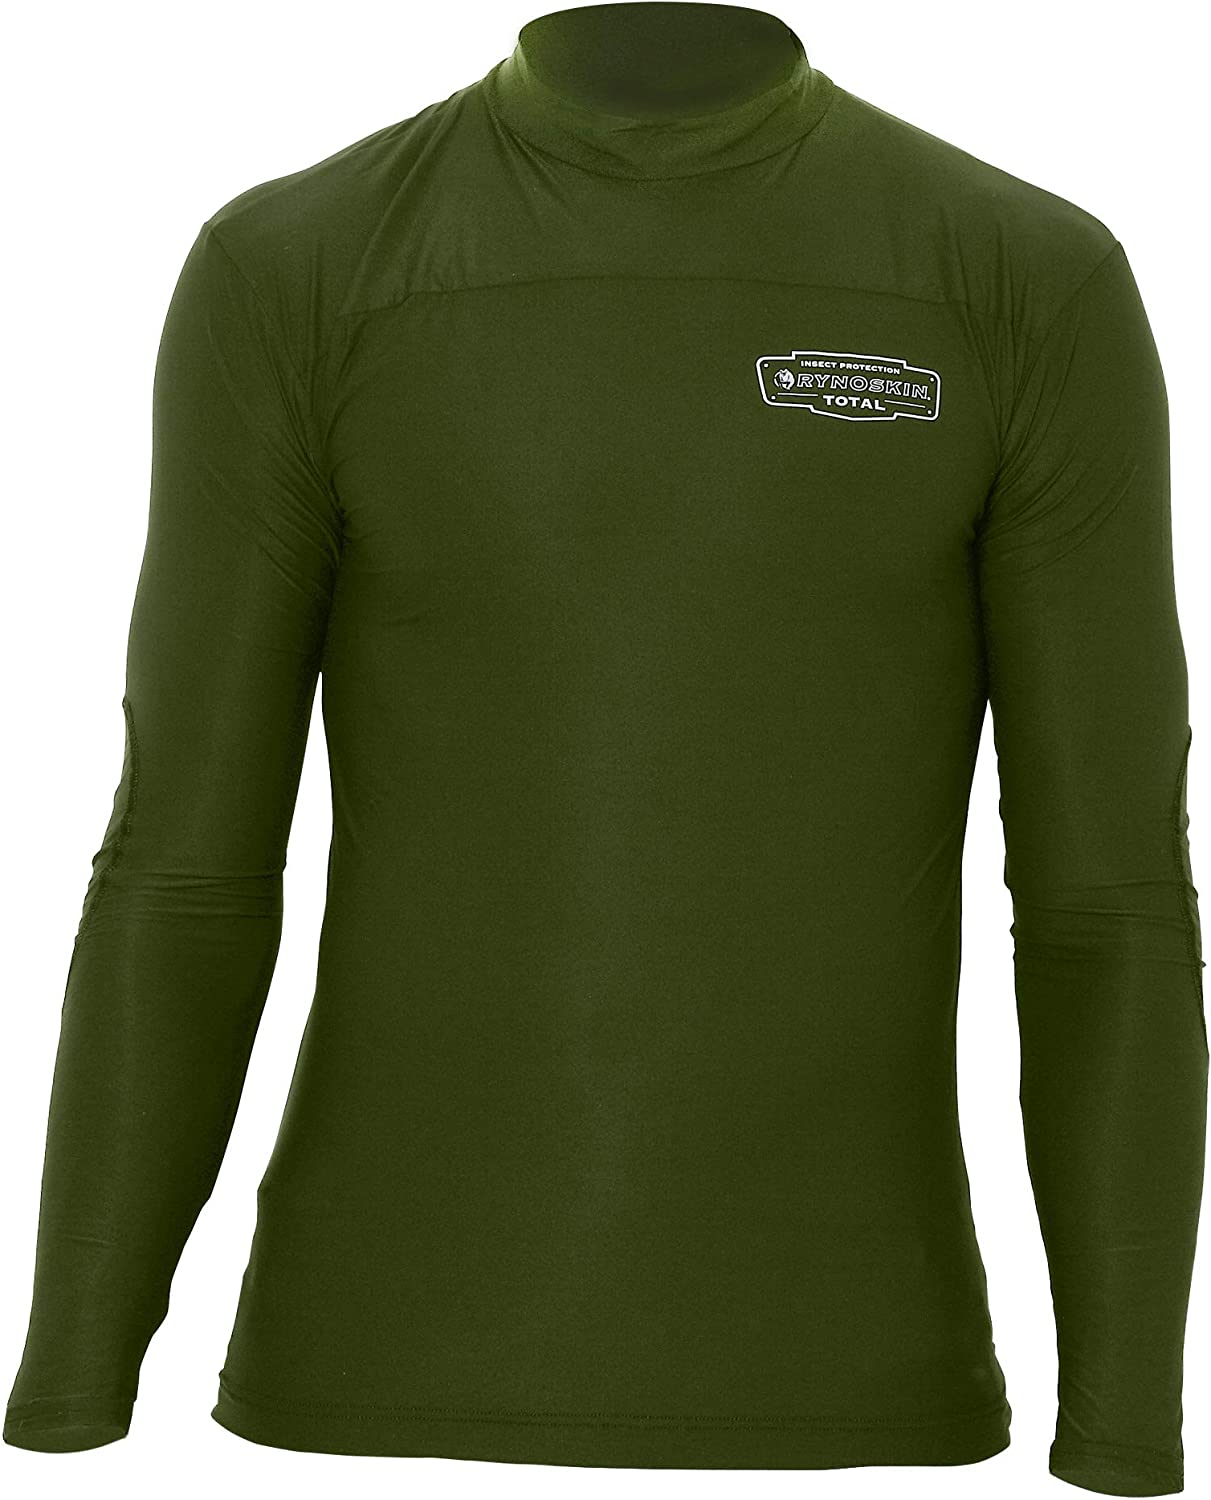 Challenge the lowest price of Japan ☆ Rynoskin Free shipping on posting reviews Total Shirt HS0212X Green 2XL